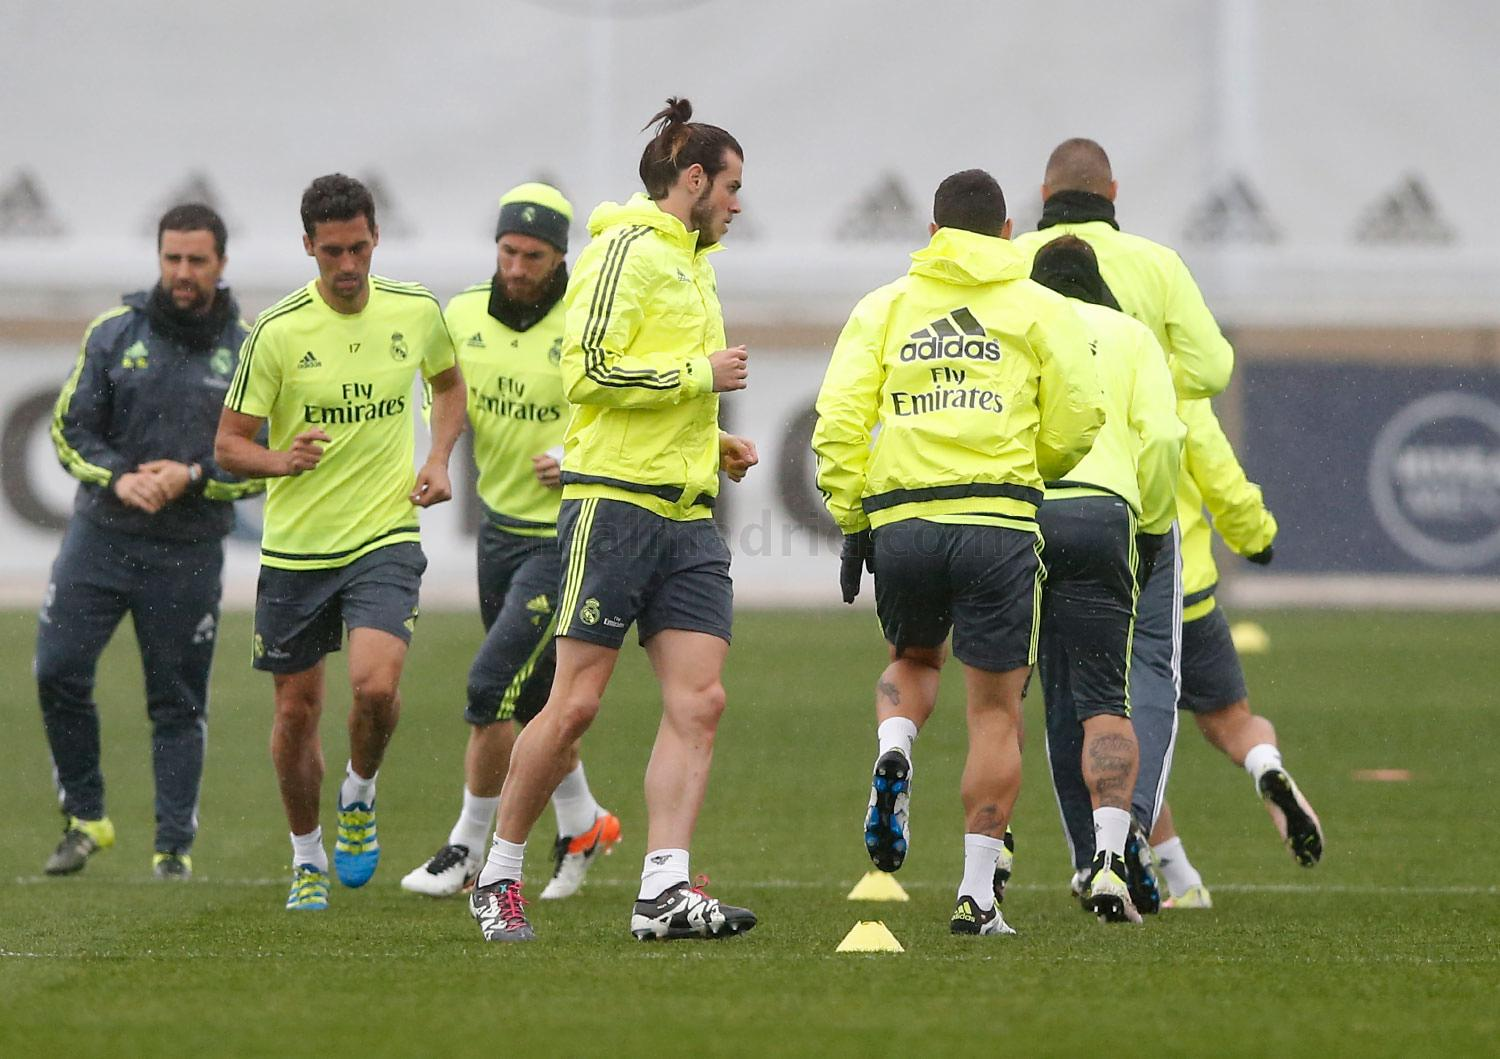 Real Madrid - Entrenamiento del Real Madrid - 04-04-2016